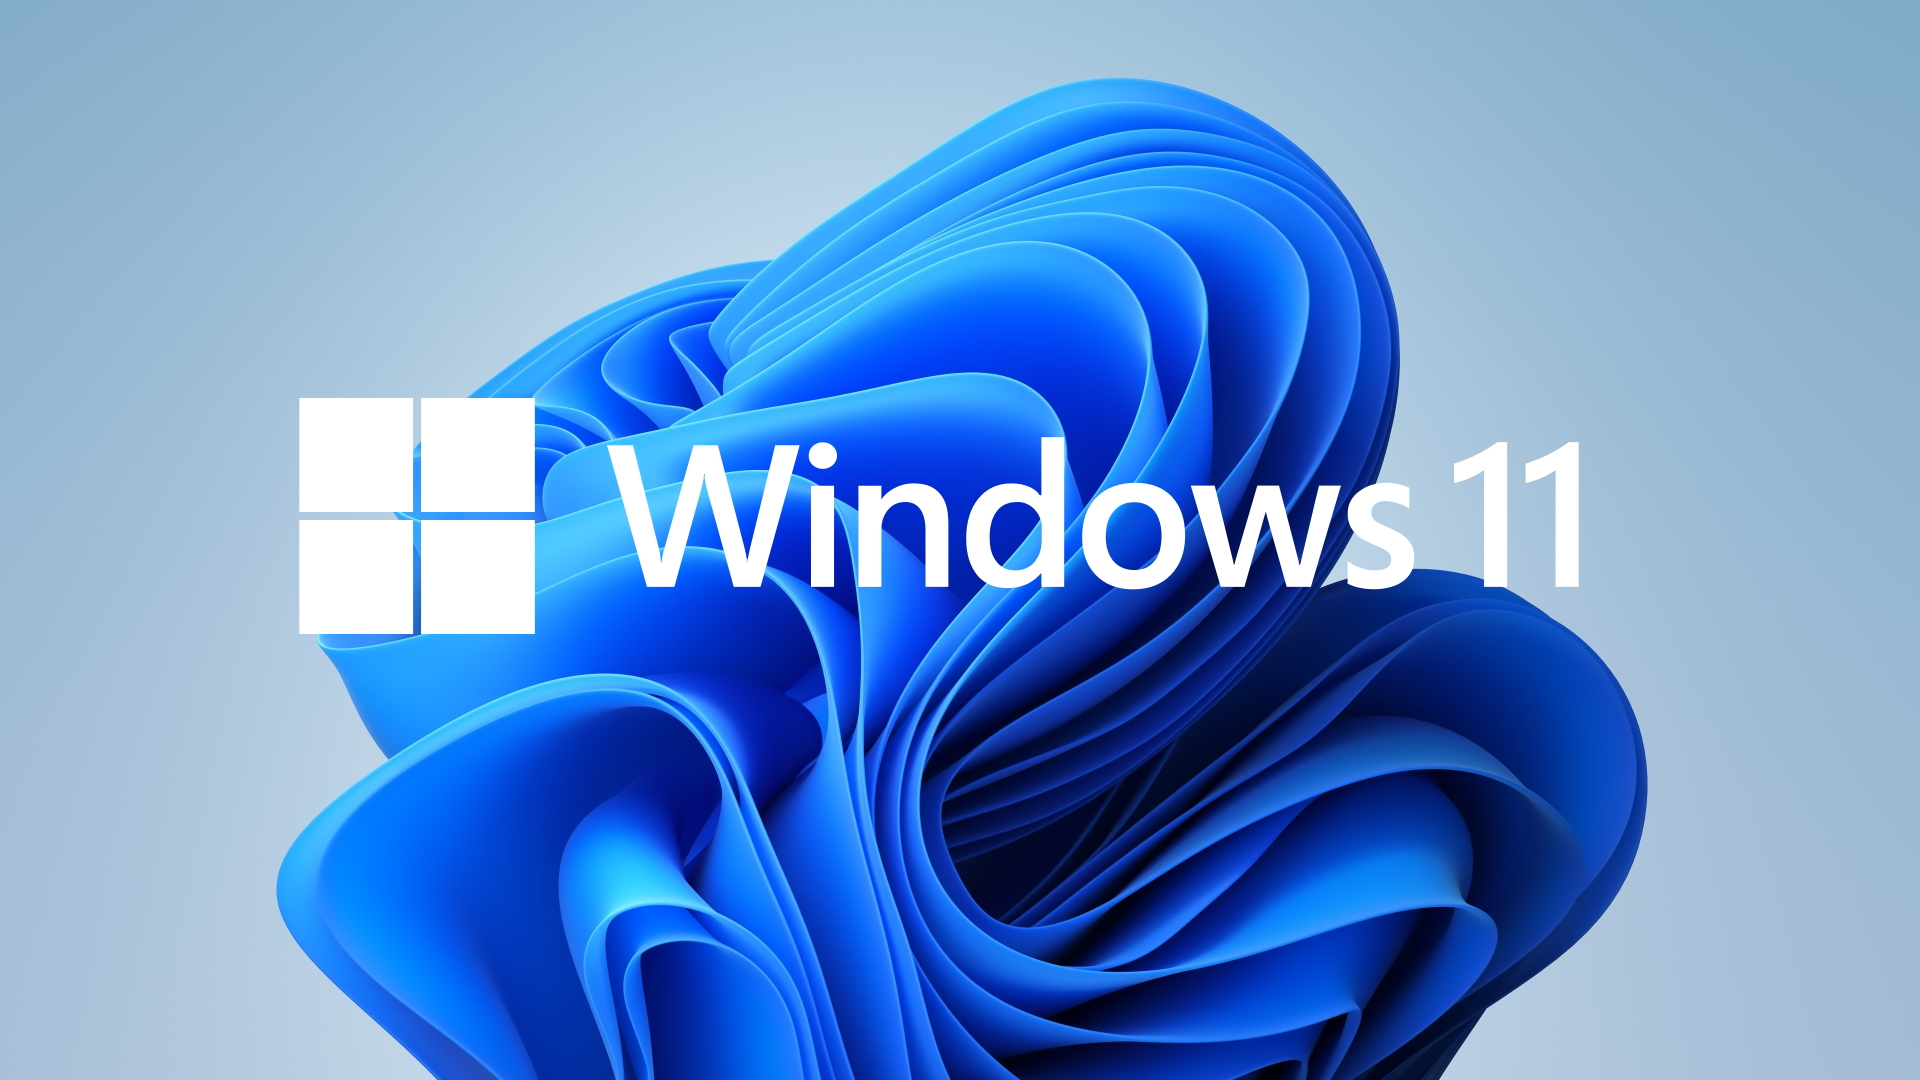 You'll be able to install Windows 11 on unsupported CPUs using an ISO